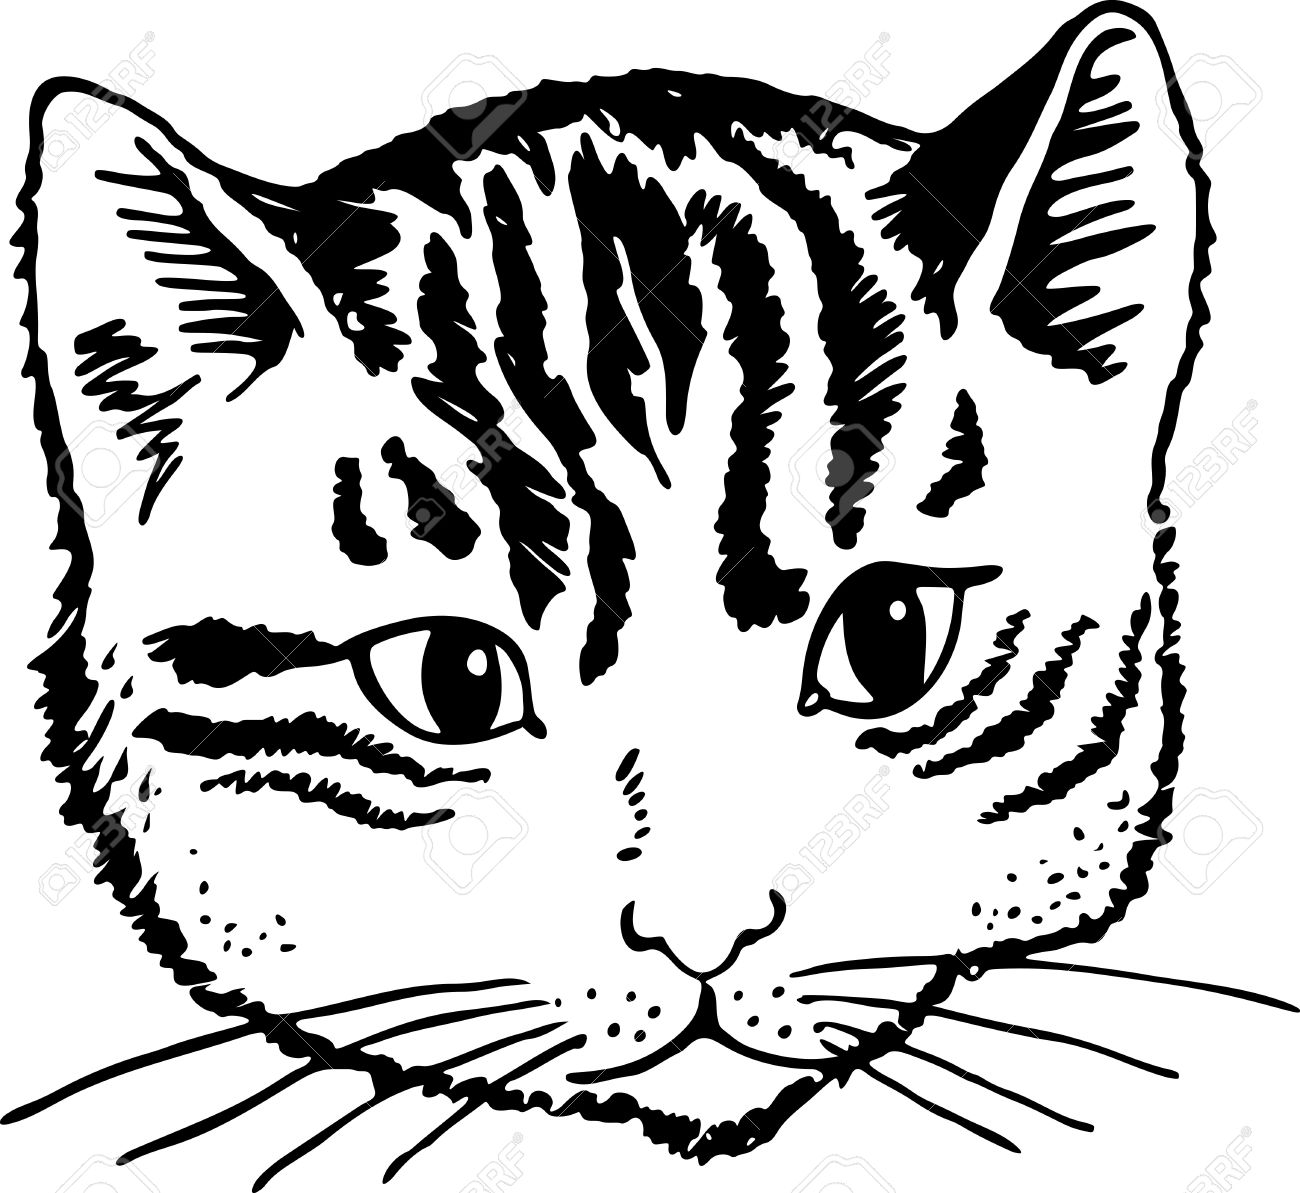 Illustration Simple Black And White Illustration Of A Cats Cute Face Simple  Black And White Illustration Draw A Cartoon Lion How To Draw Stormtrooper